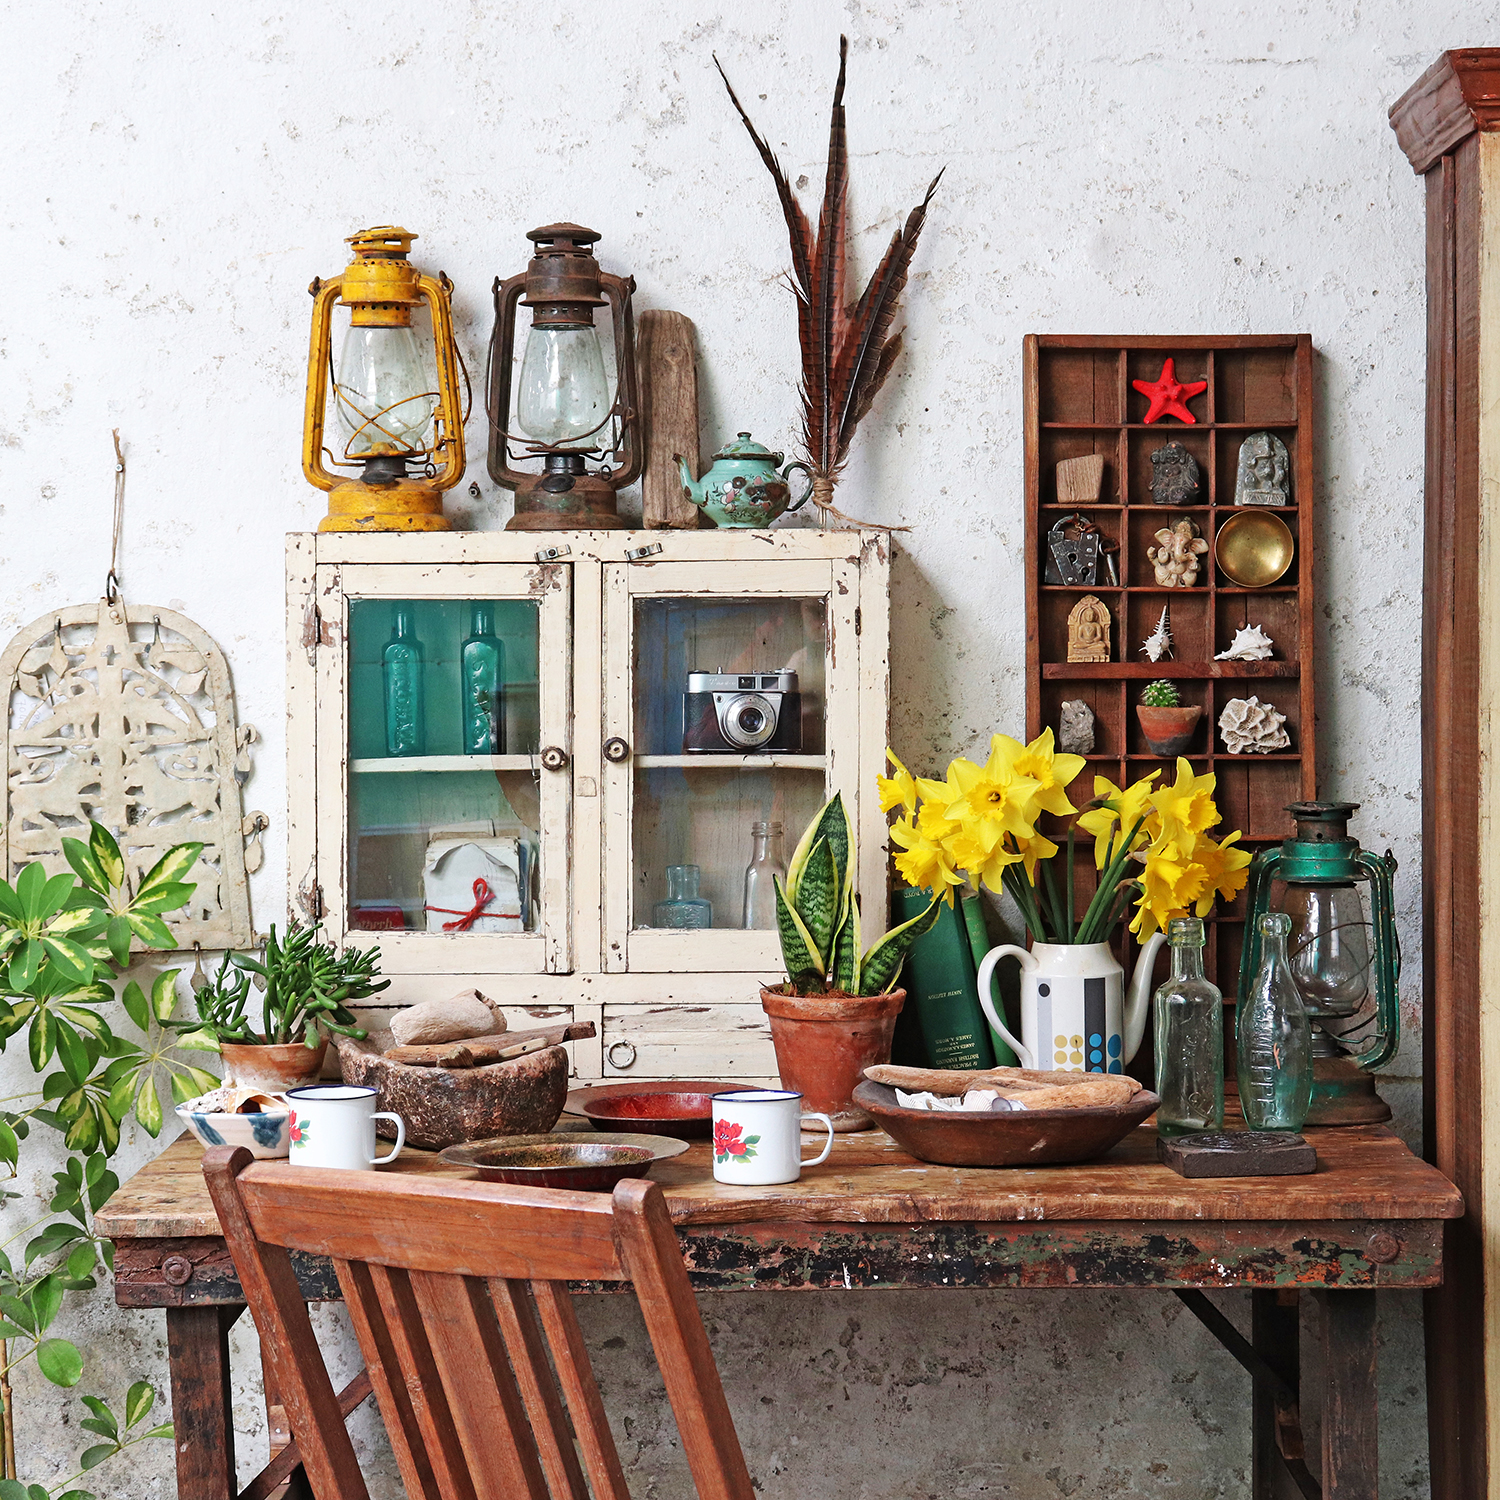 feature some rustic charm in your home with our cottagecore edit